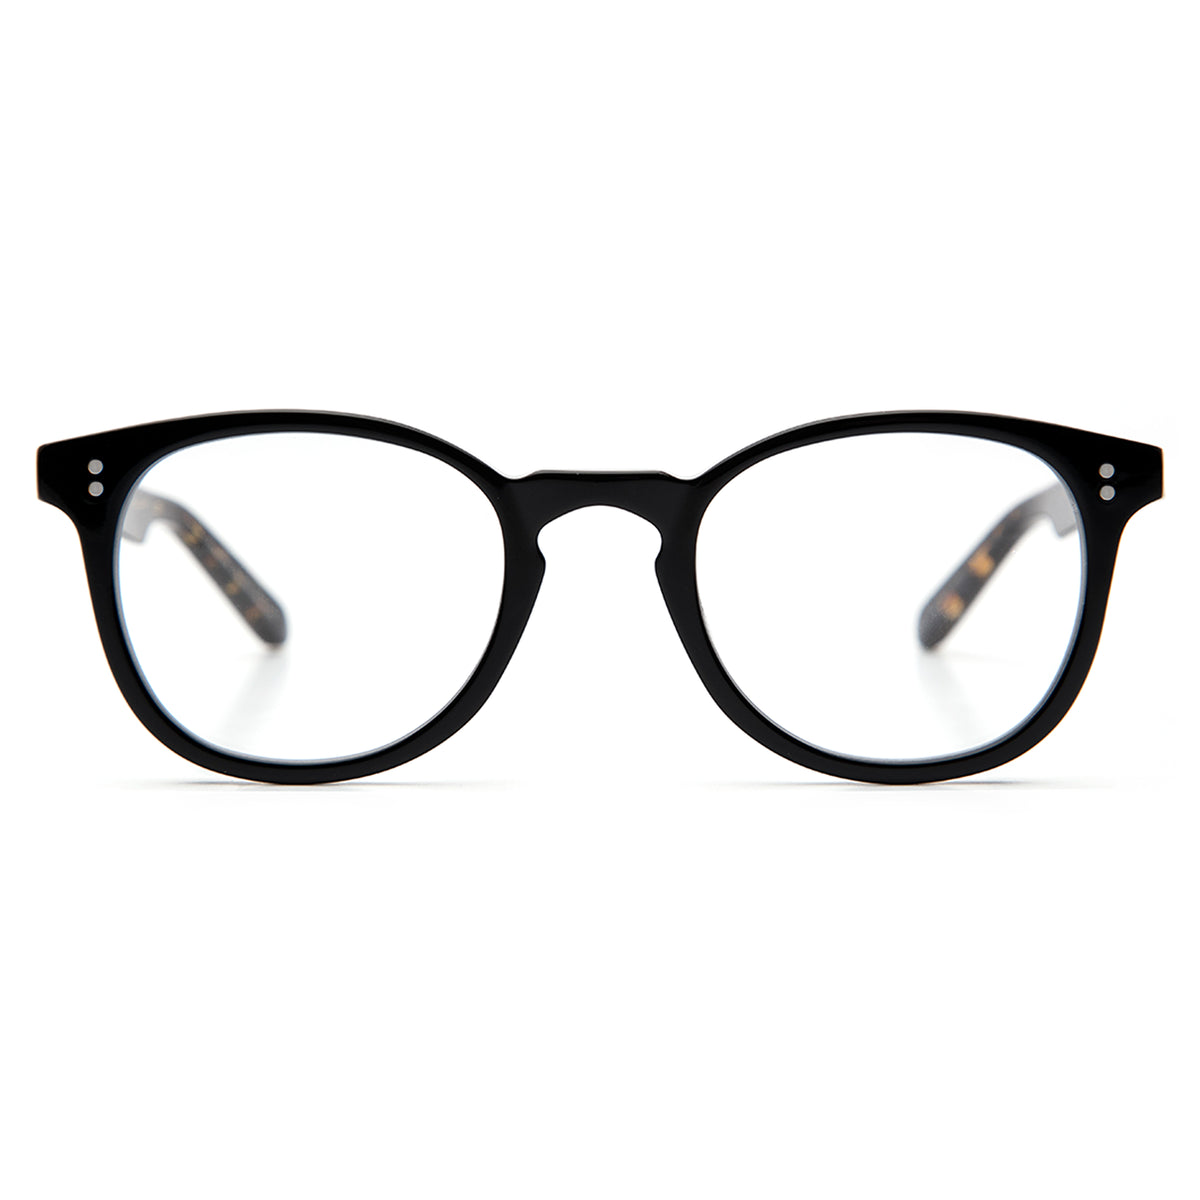 MARENGO | Black- Handcrafted acetate Optical frames with a round silhouette.